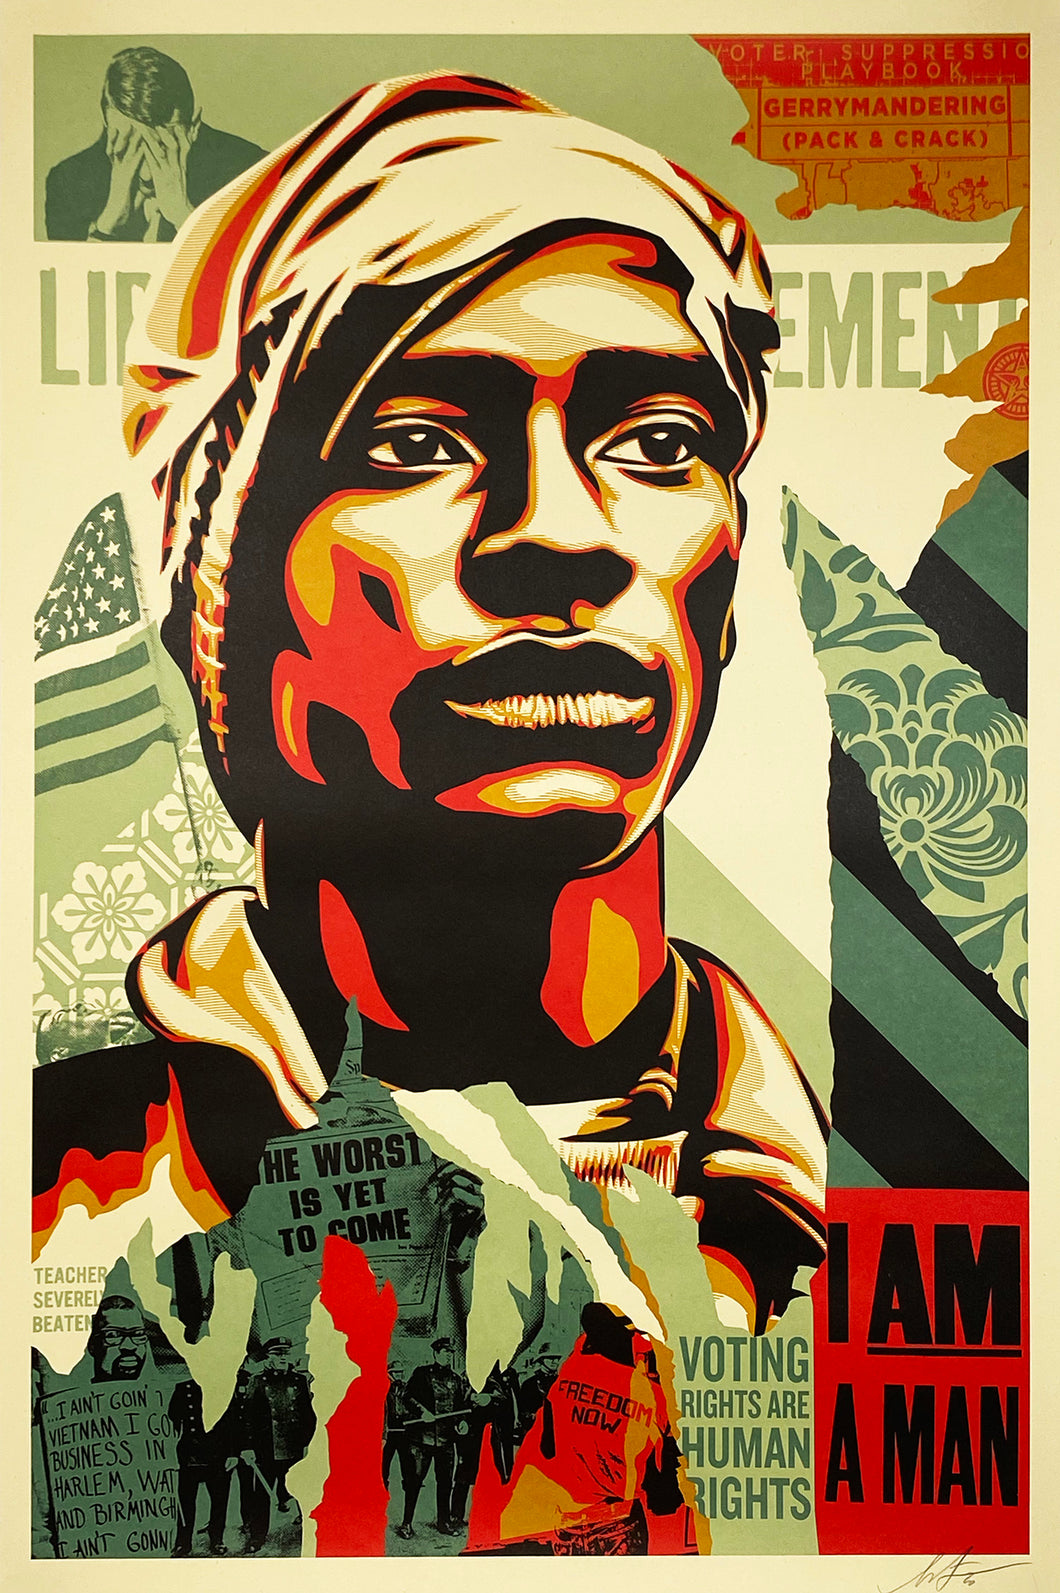 SHEPARD FAIREY 'Voting Rights are Human Rights' Offset Litho